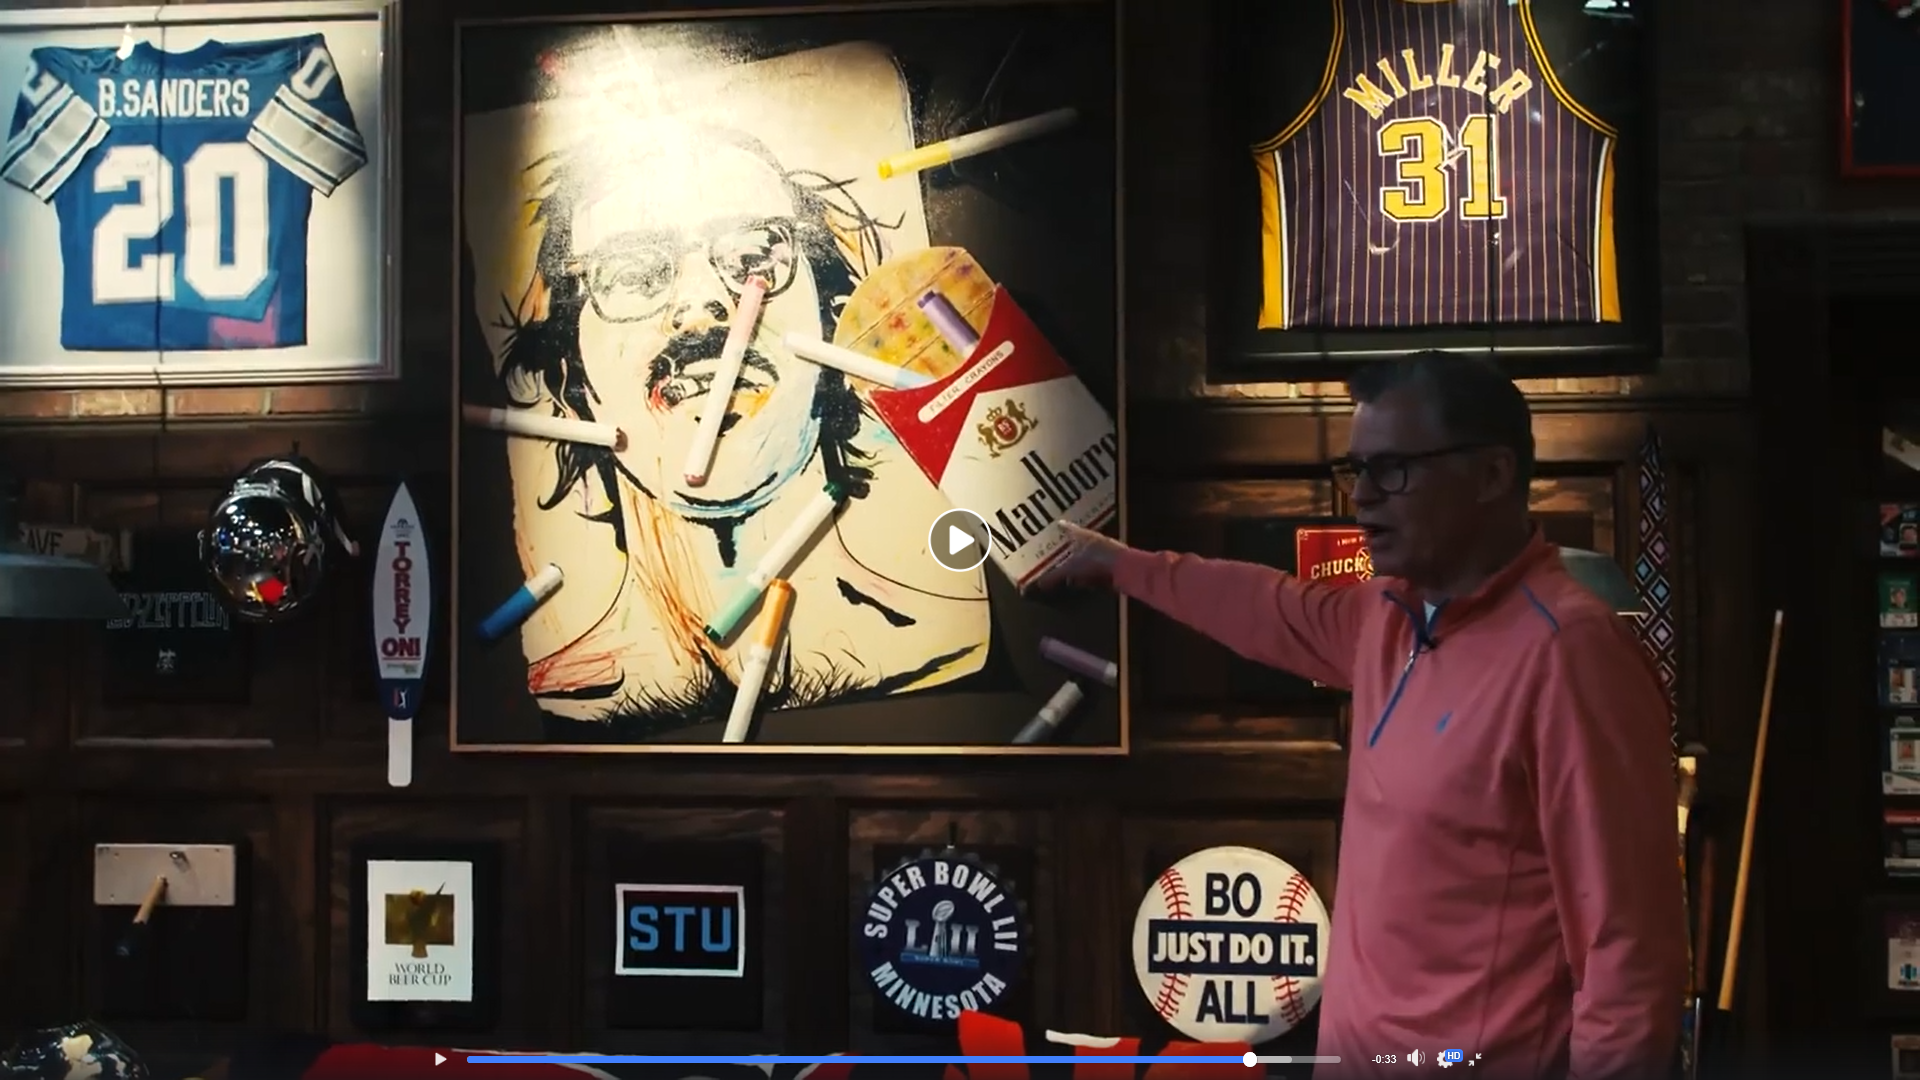 STeele painting featured in dan patrick's man cave - Check out Sportscaster Dan Patrick's Man Cave Tour, including his recently-acquired Ben Steele painting.